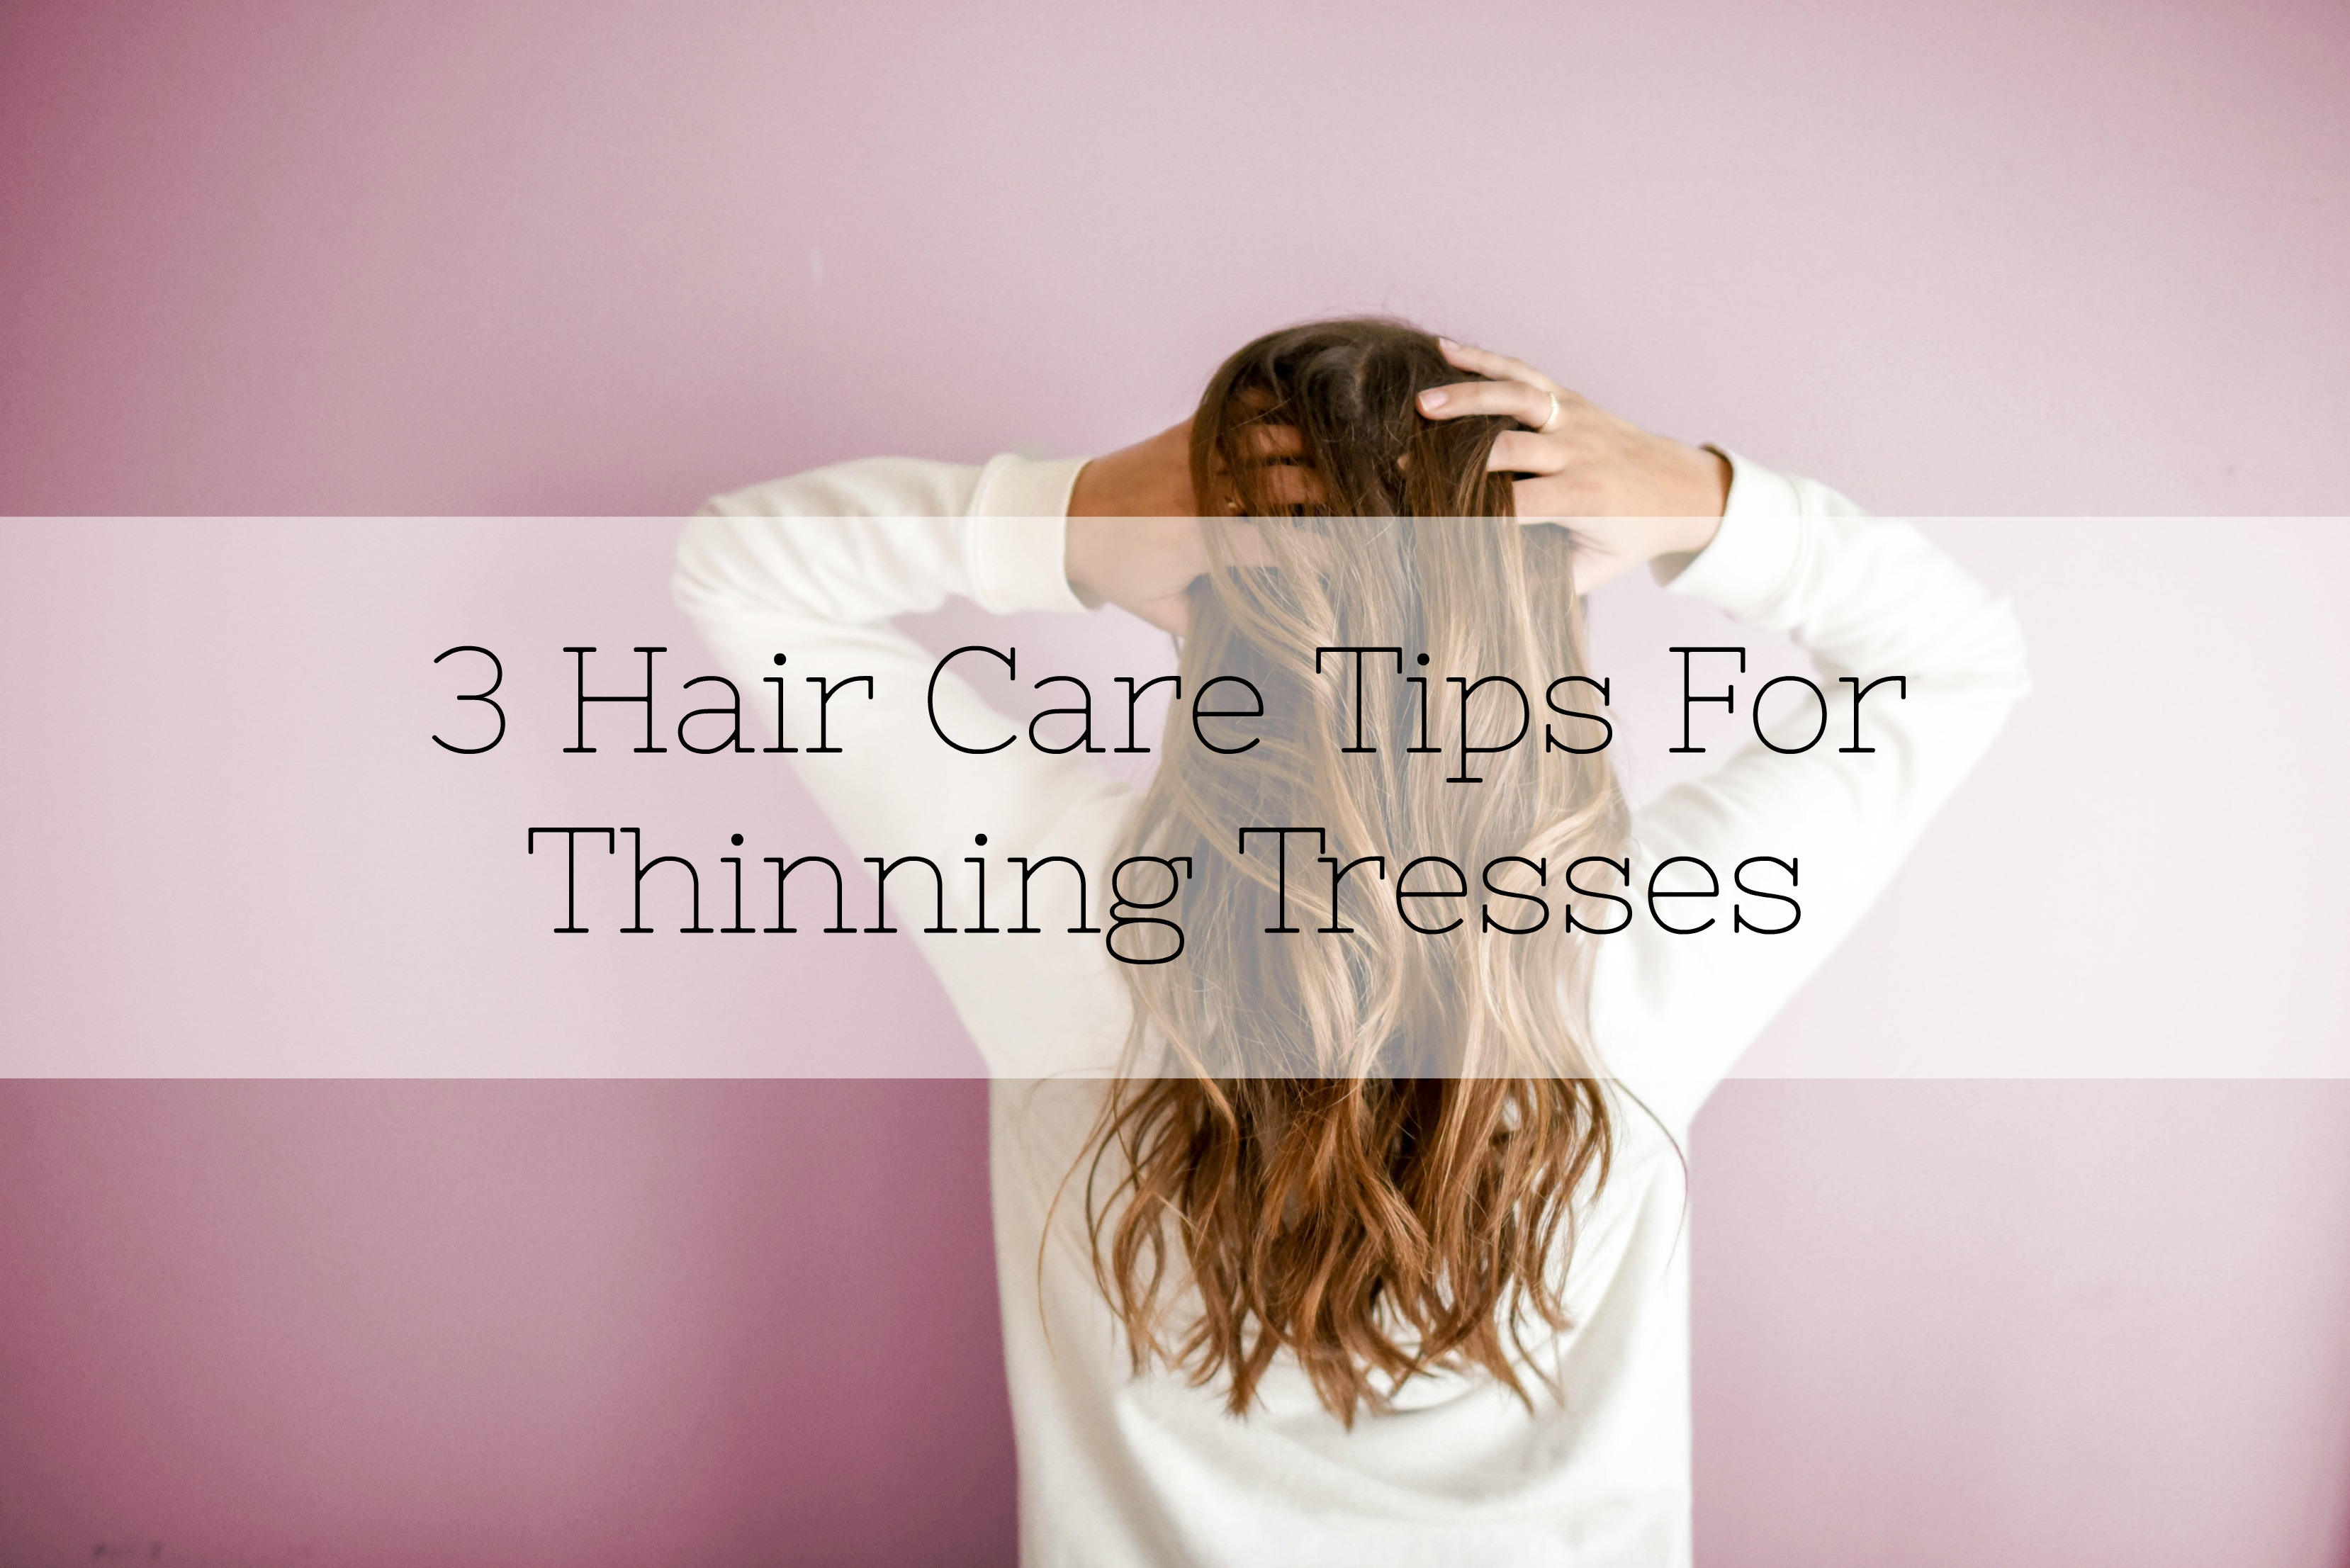 3 Hair Care Tips For Thinning Tresses